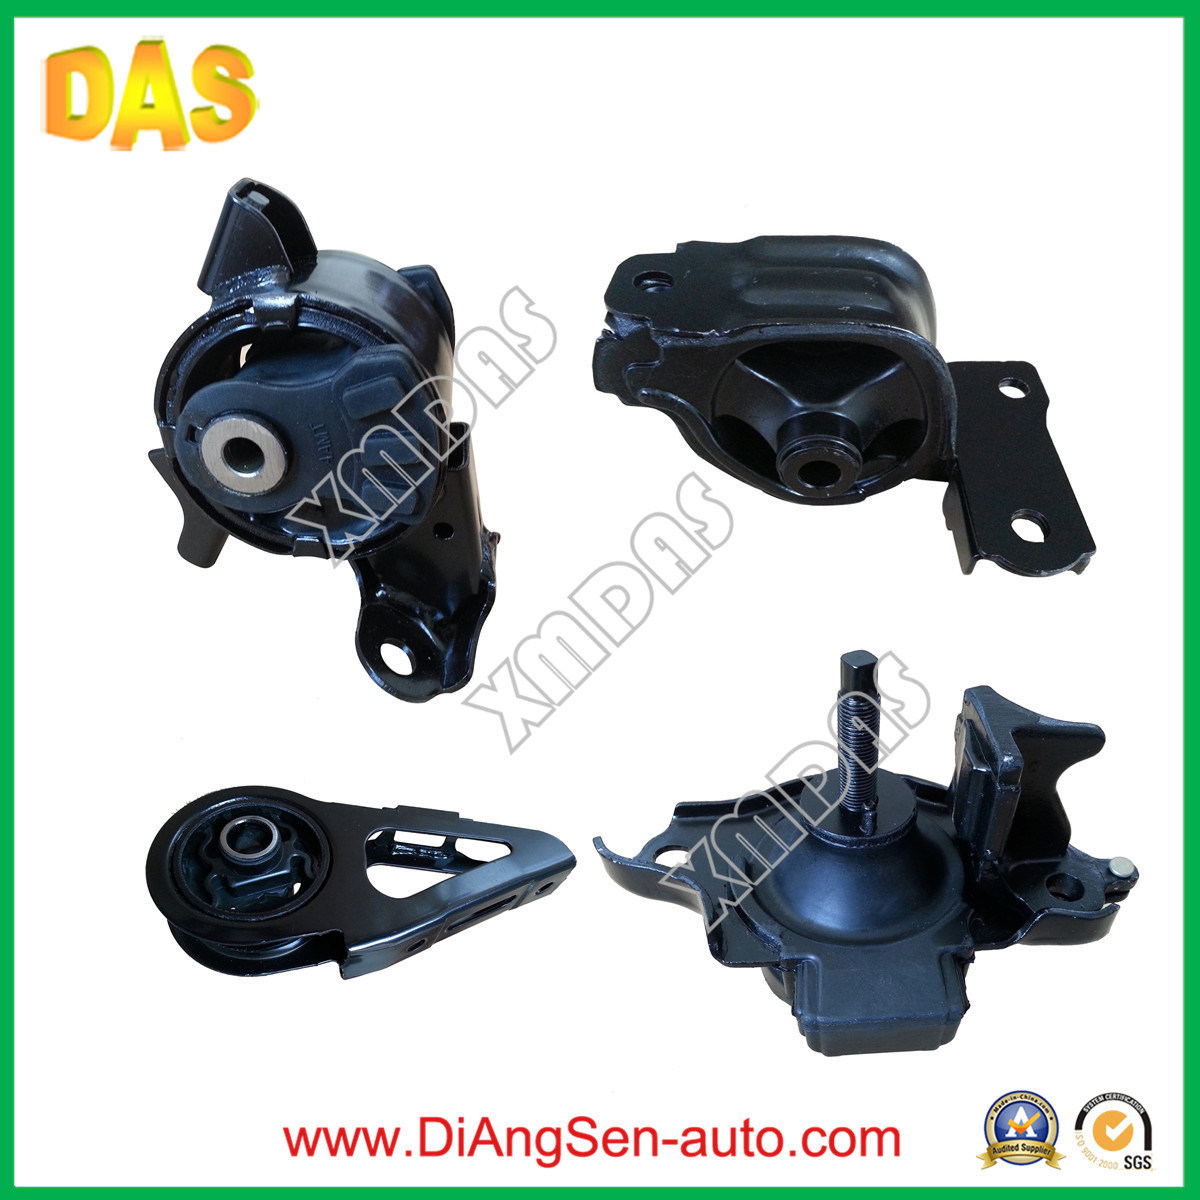 China Repair Auto Parts Engine Motor Rubber Mount For Honda City 2011 Ridgeline Suspension Control Arm Front Left Lower W0133 2007 50805 Saa 013 50810 Sel T81 50826 E01 50840 003